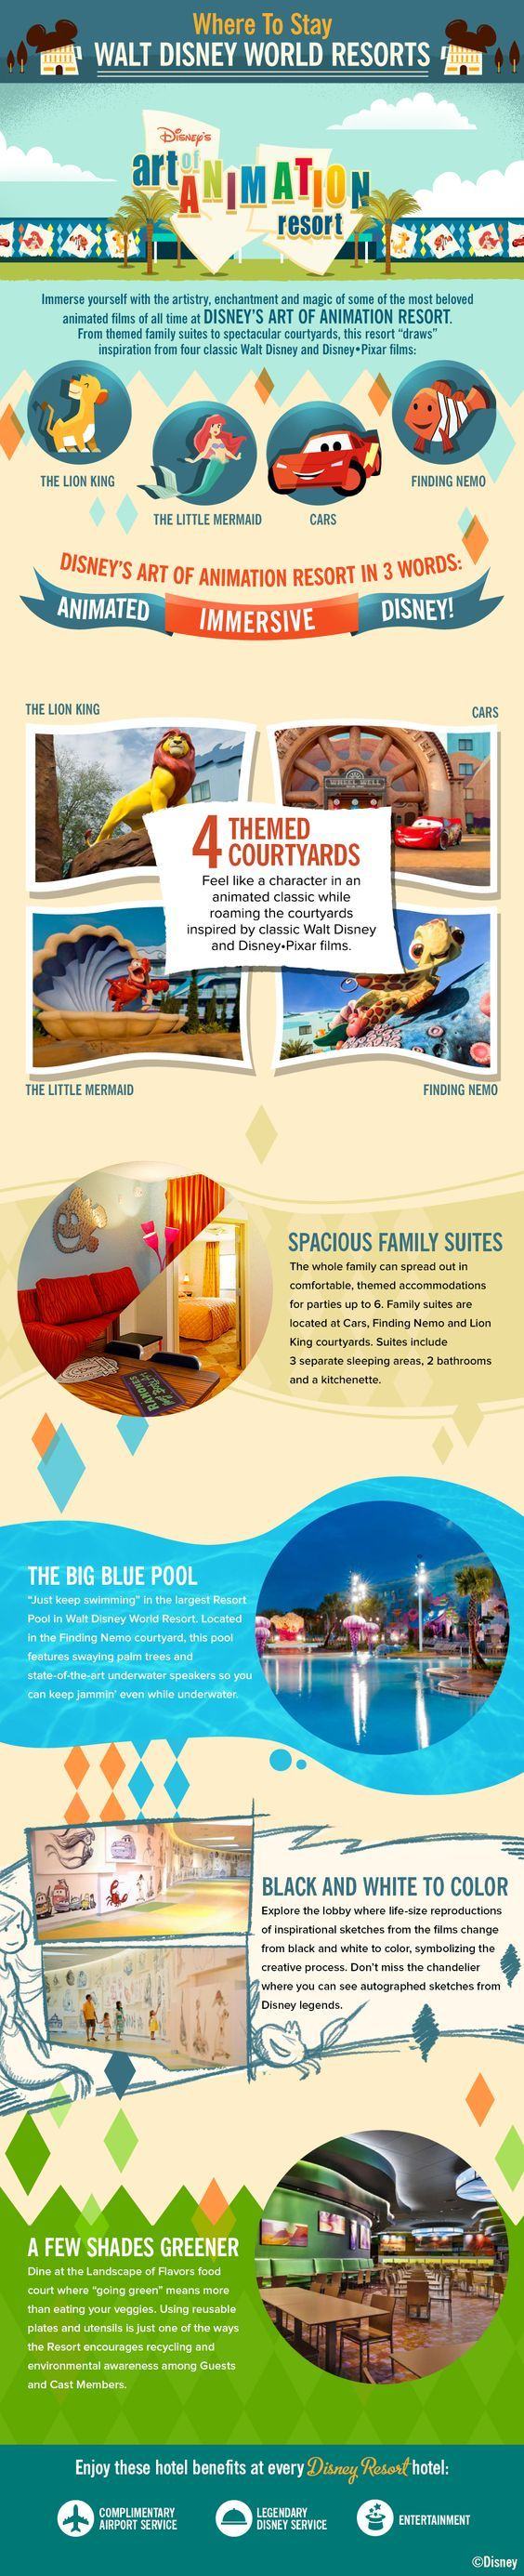 Disney's Art of Animation Resort is a magical resort for kids of all ages from 1-99!  ;)  Our Laughing Place Travel is ready to help you plan your magical Disney vacation because at OLP Travel, we put the Pixie Dust in Concierge Service!  #olptravel